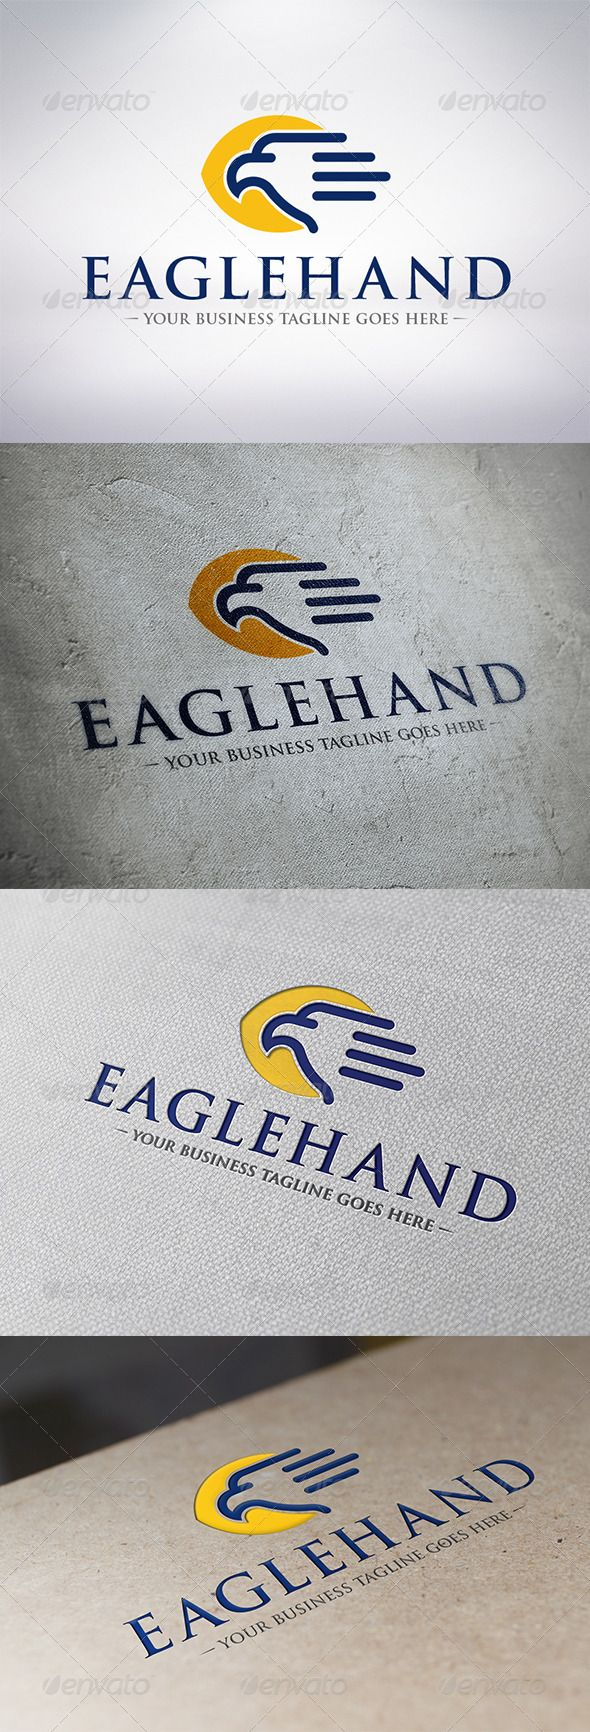 Eagle Hand  Logo Design Template Vector #logotype Download it here: http://graphicriver.net/item/eagle-hand-logo-template/6314023?s_rank=545?ref=nesto